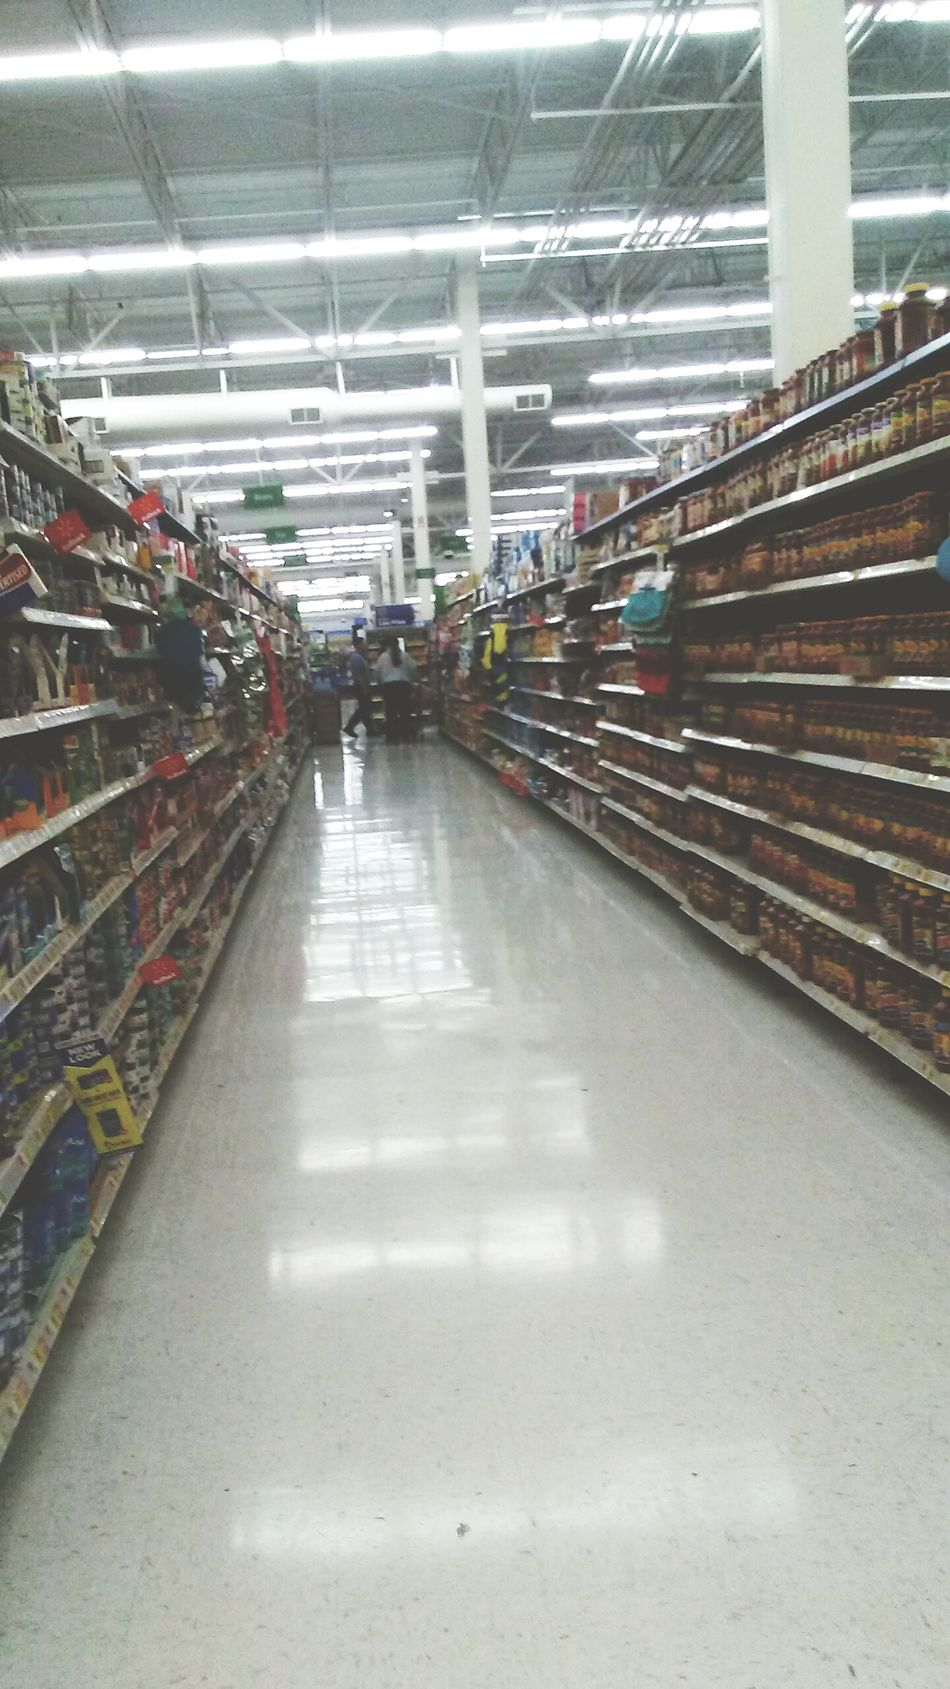 Fall in love with the ordinary Industry Indoors  Large Group Of Objects Business Finance And Industry Shelf Factory No People Supermarket Day Architecture Illuminated Walmart Supermarket Retail